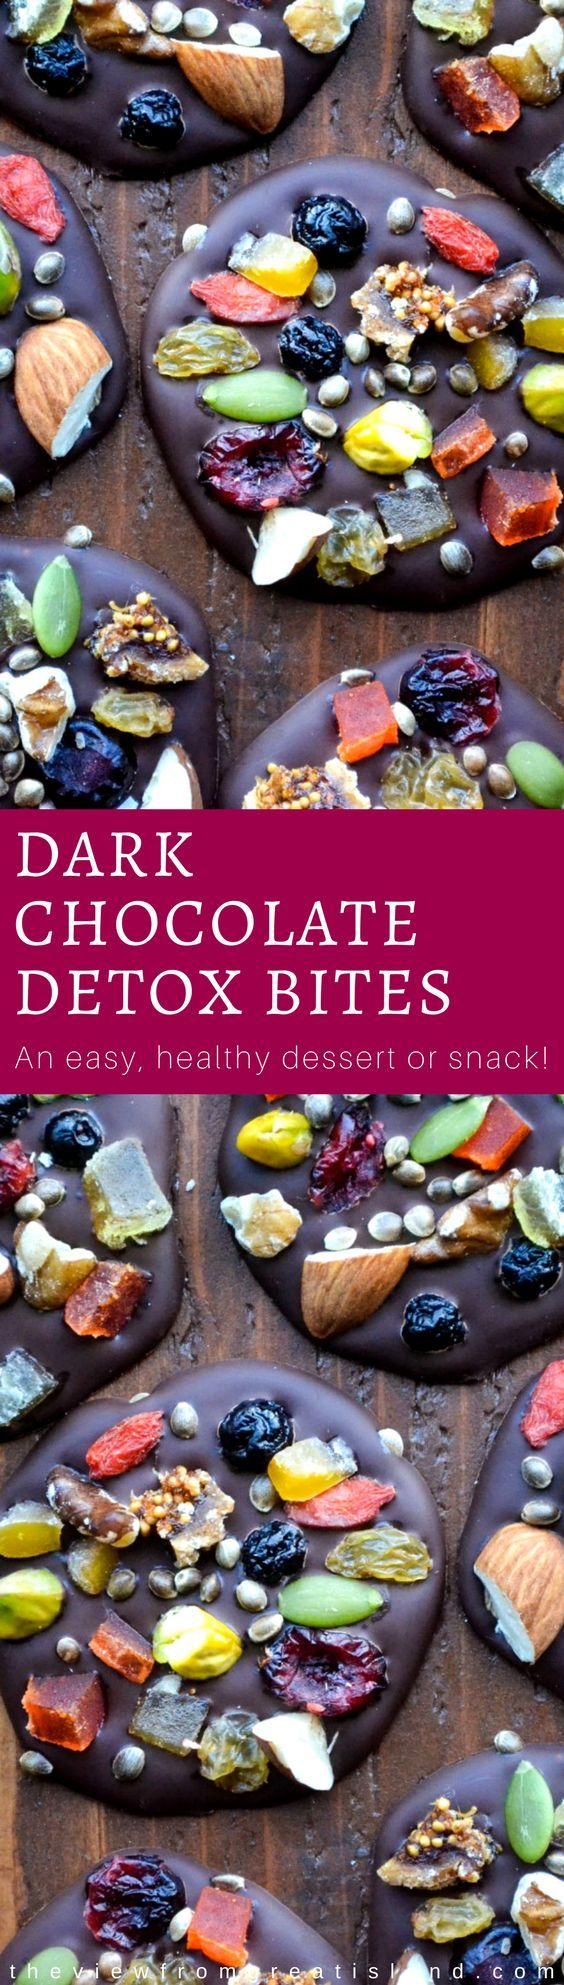 Dark Chocolate Detox Bites | Posted By: DebbieNet.com